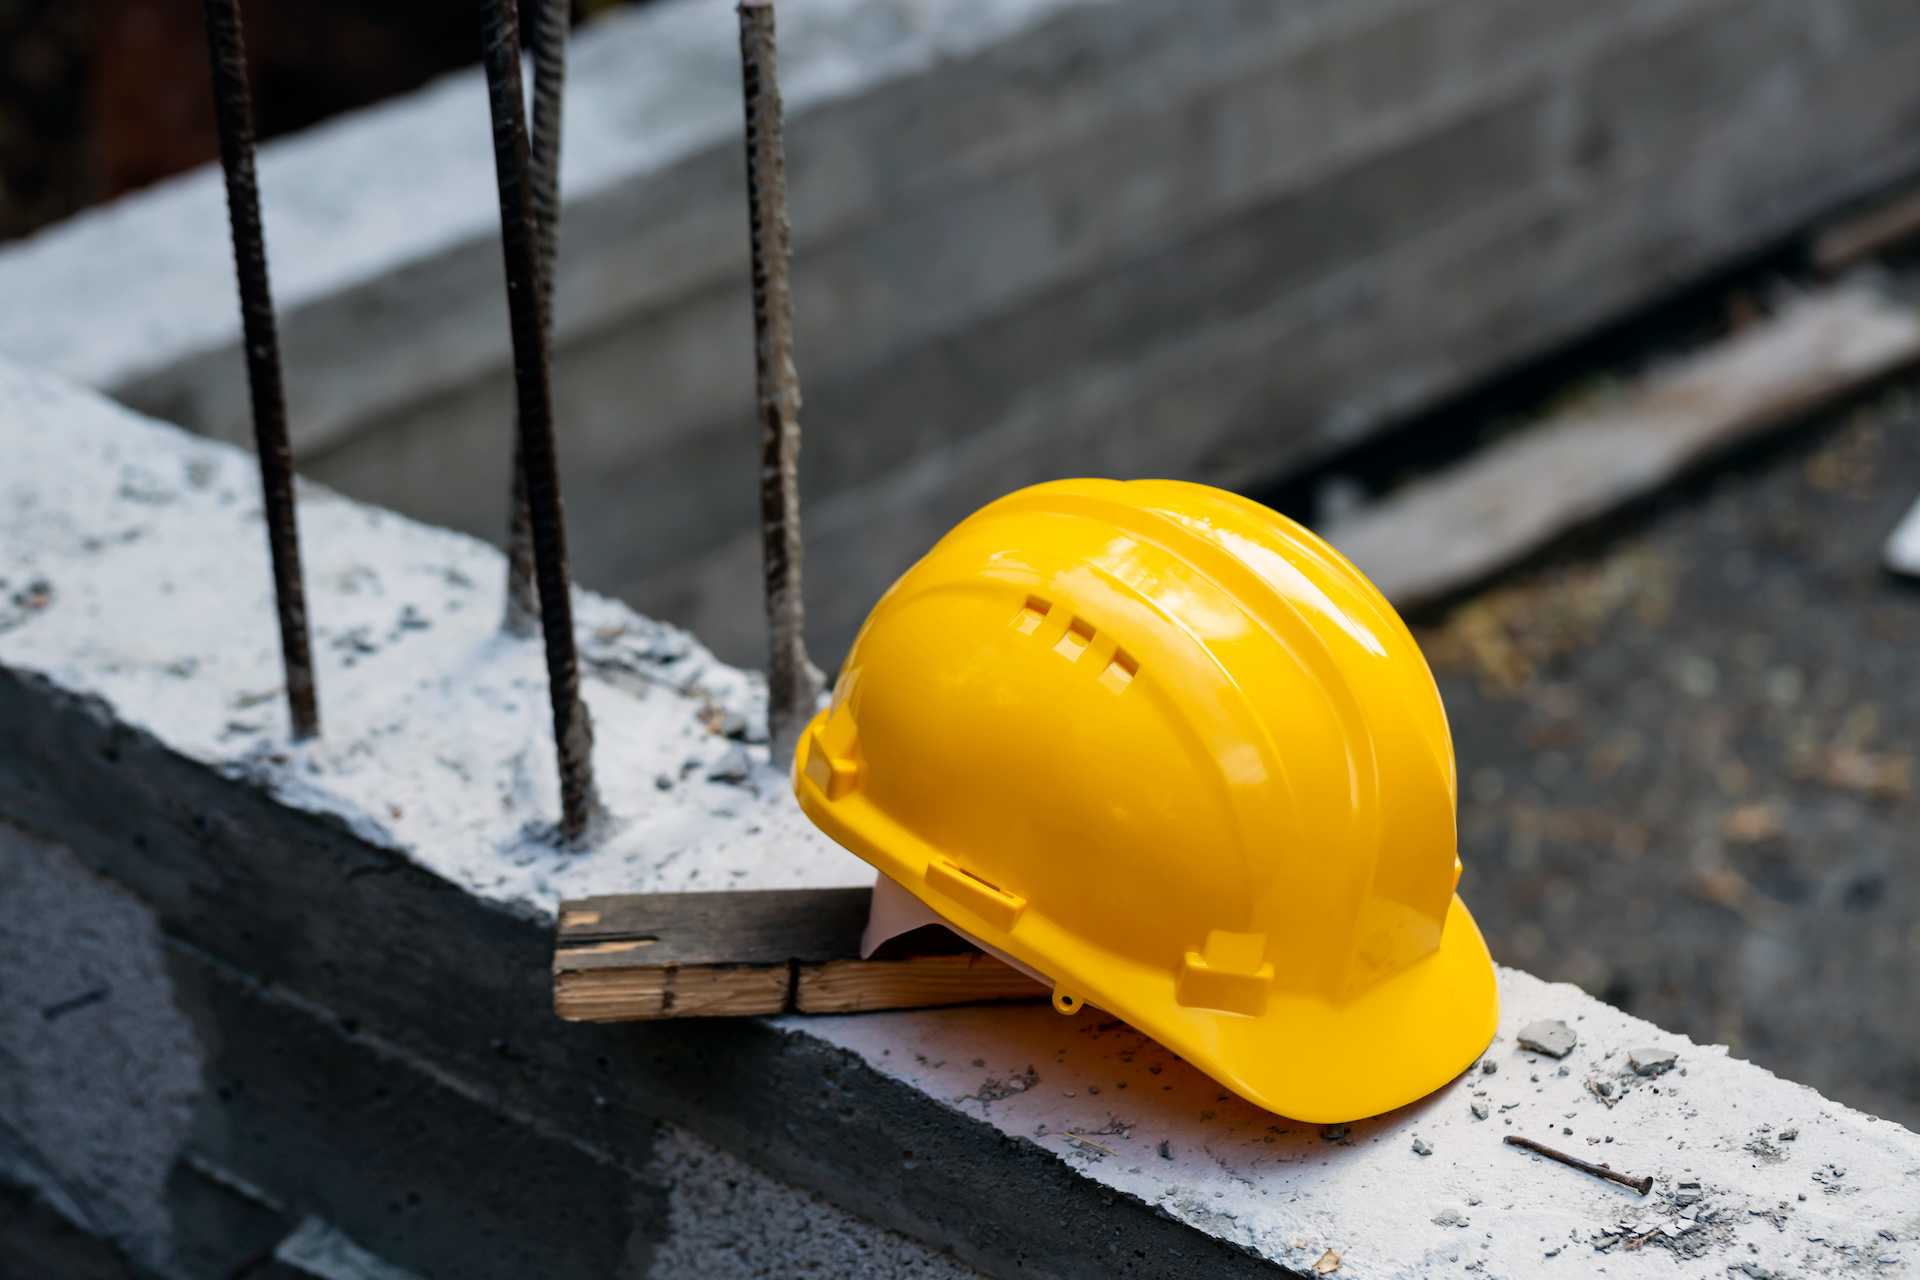 Construction hard hat safety tools equipment for workers in construction site for engineering protection head standard on building construction background. Yellow helmet.